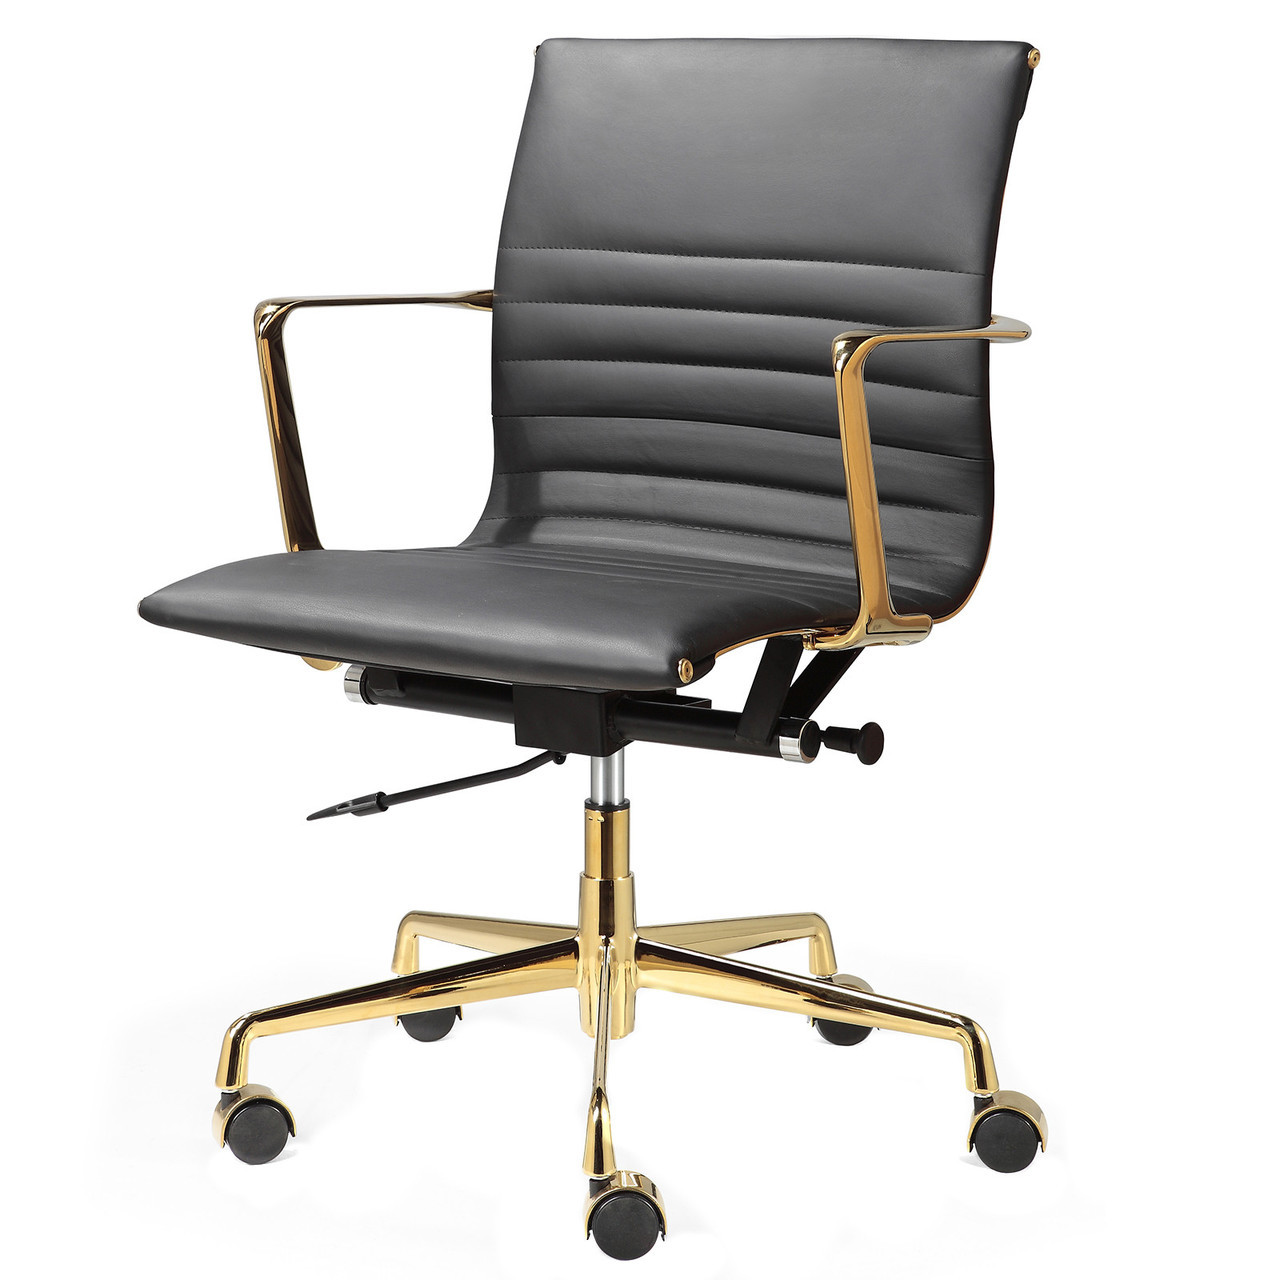 Bright Color Yellow Home Office Chair For Computer Desk Buy Home Office Chair Computer Desk Chair Chair For Computer Desk Product On Alibaba Com